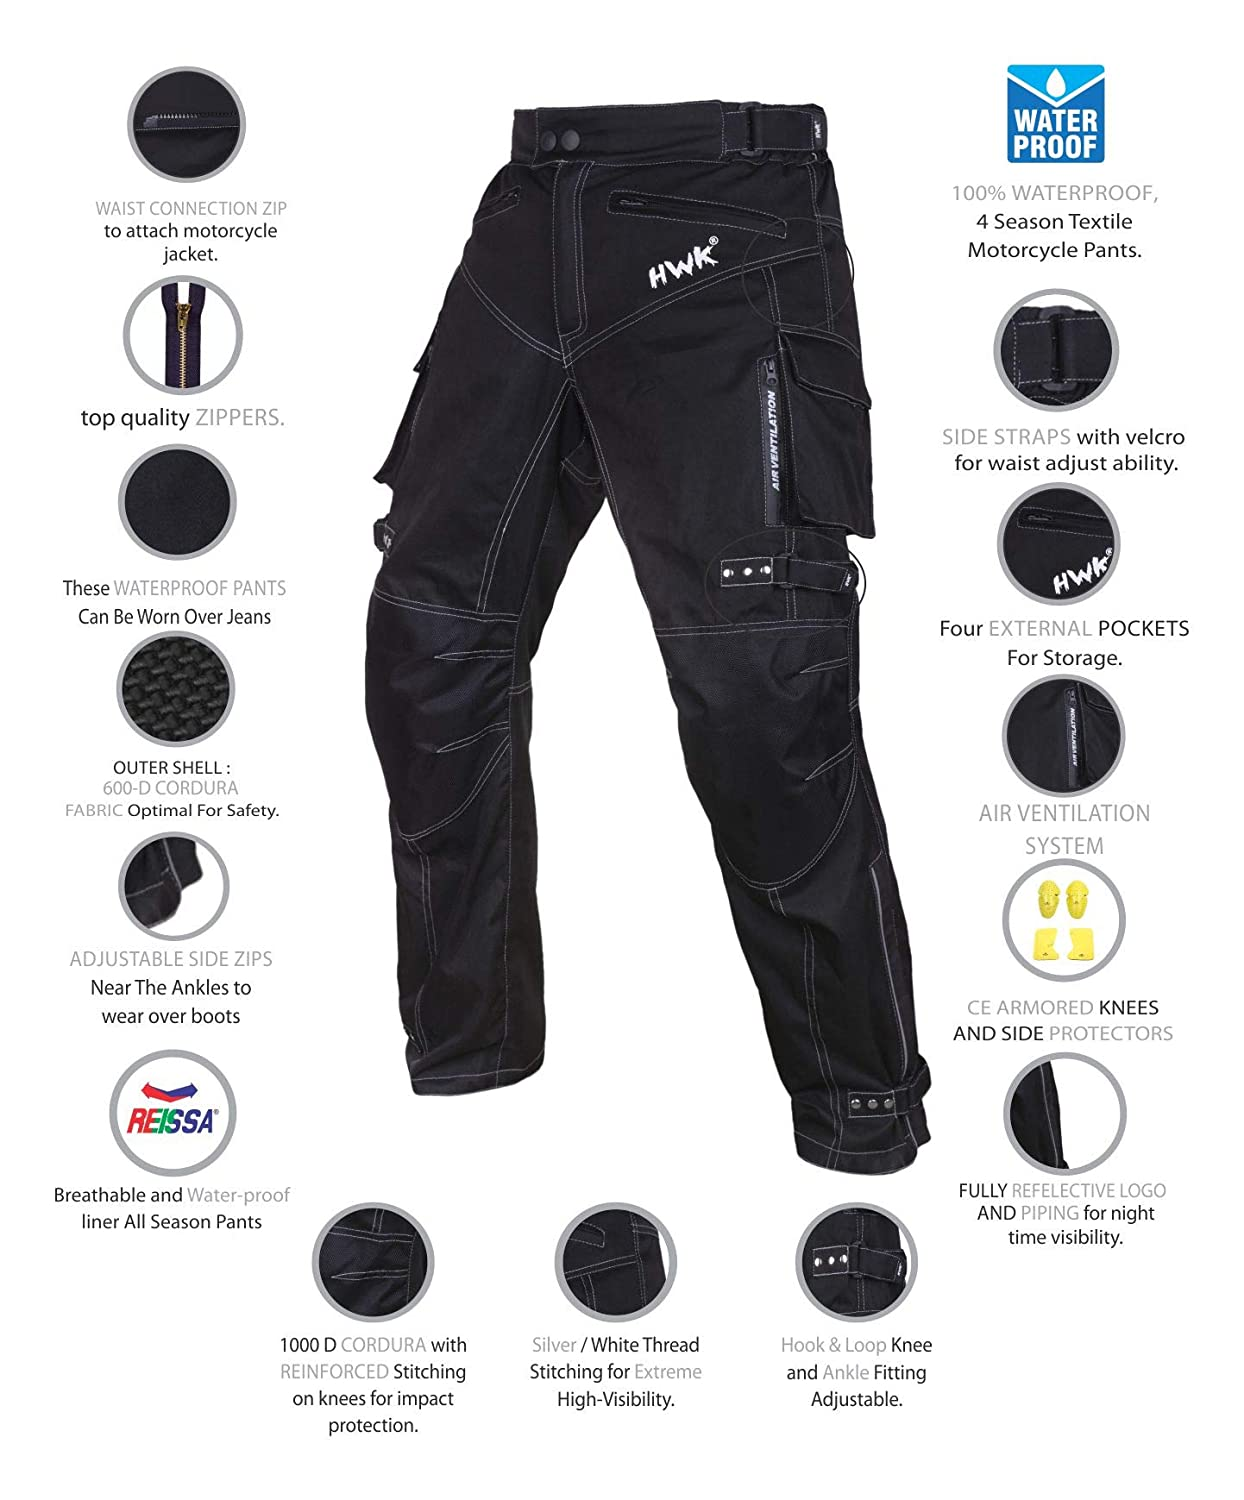 Motorcycle Pants For Men Dualsport Motocross Motorbike Pant Riding Overpants Enduro Adventure Touring Waterproof CE Armored All-Weather Waist30-32 Inseam30